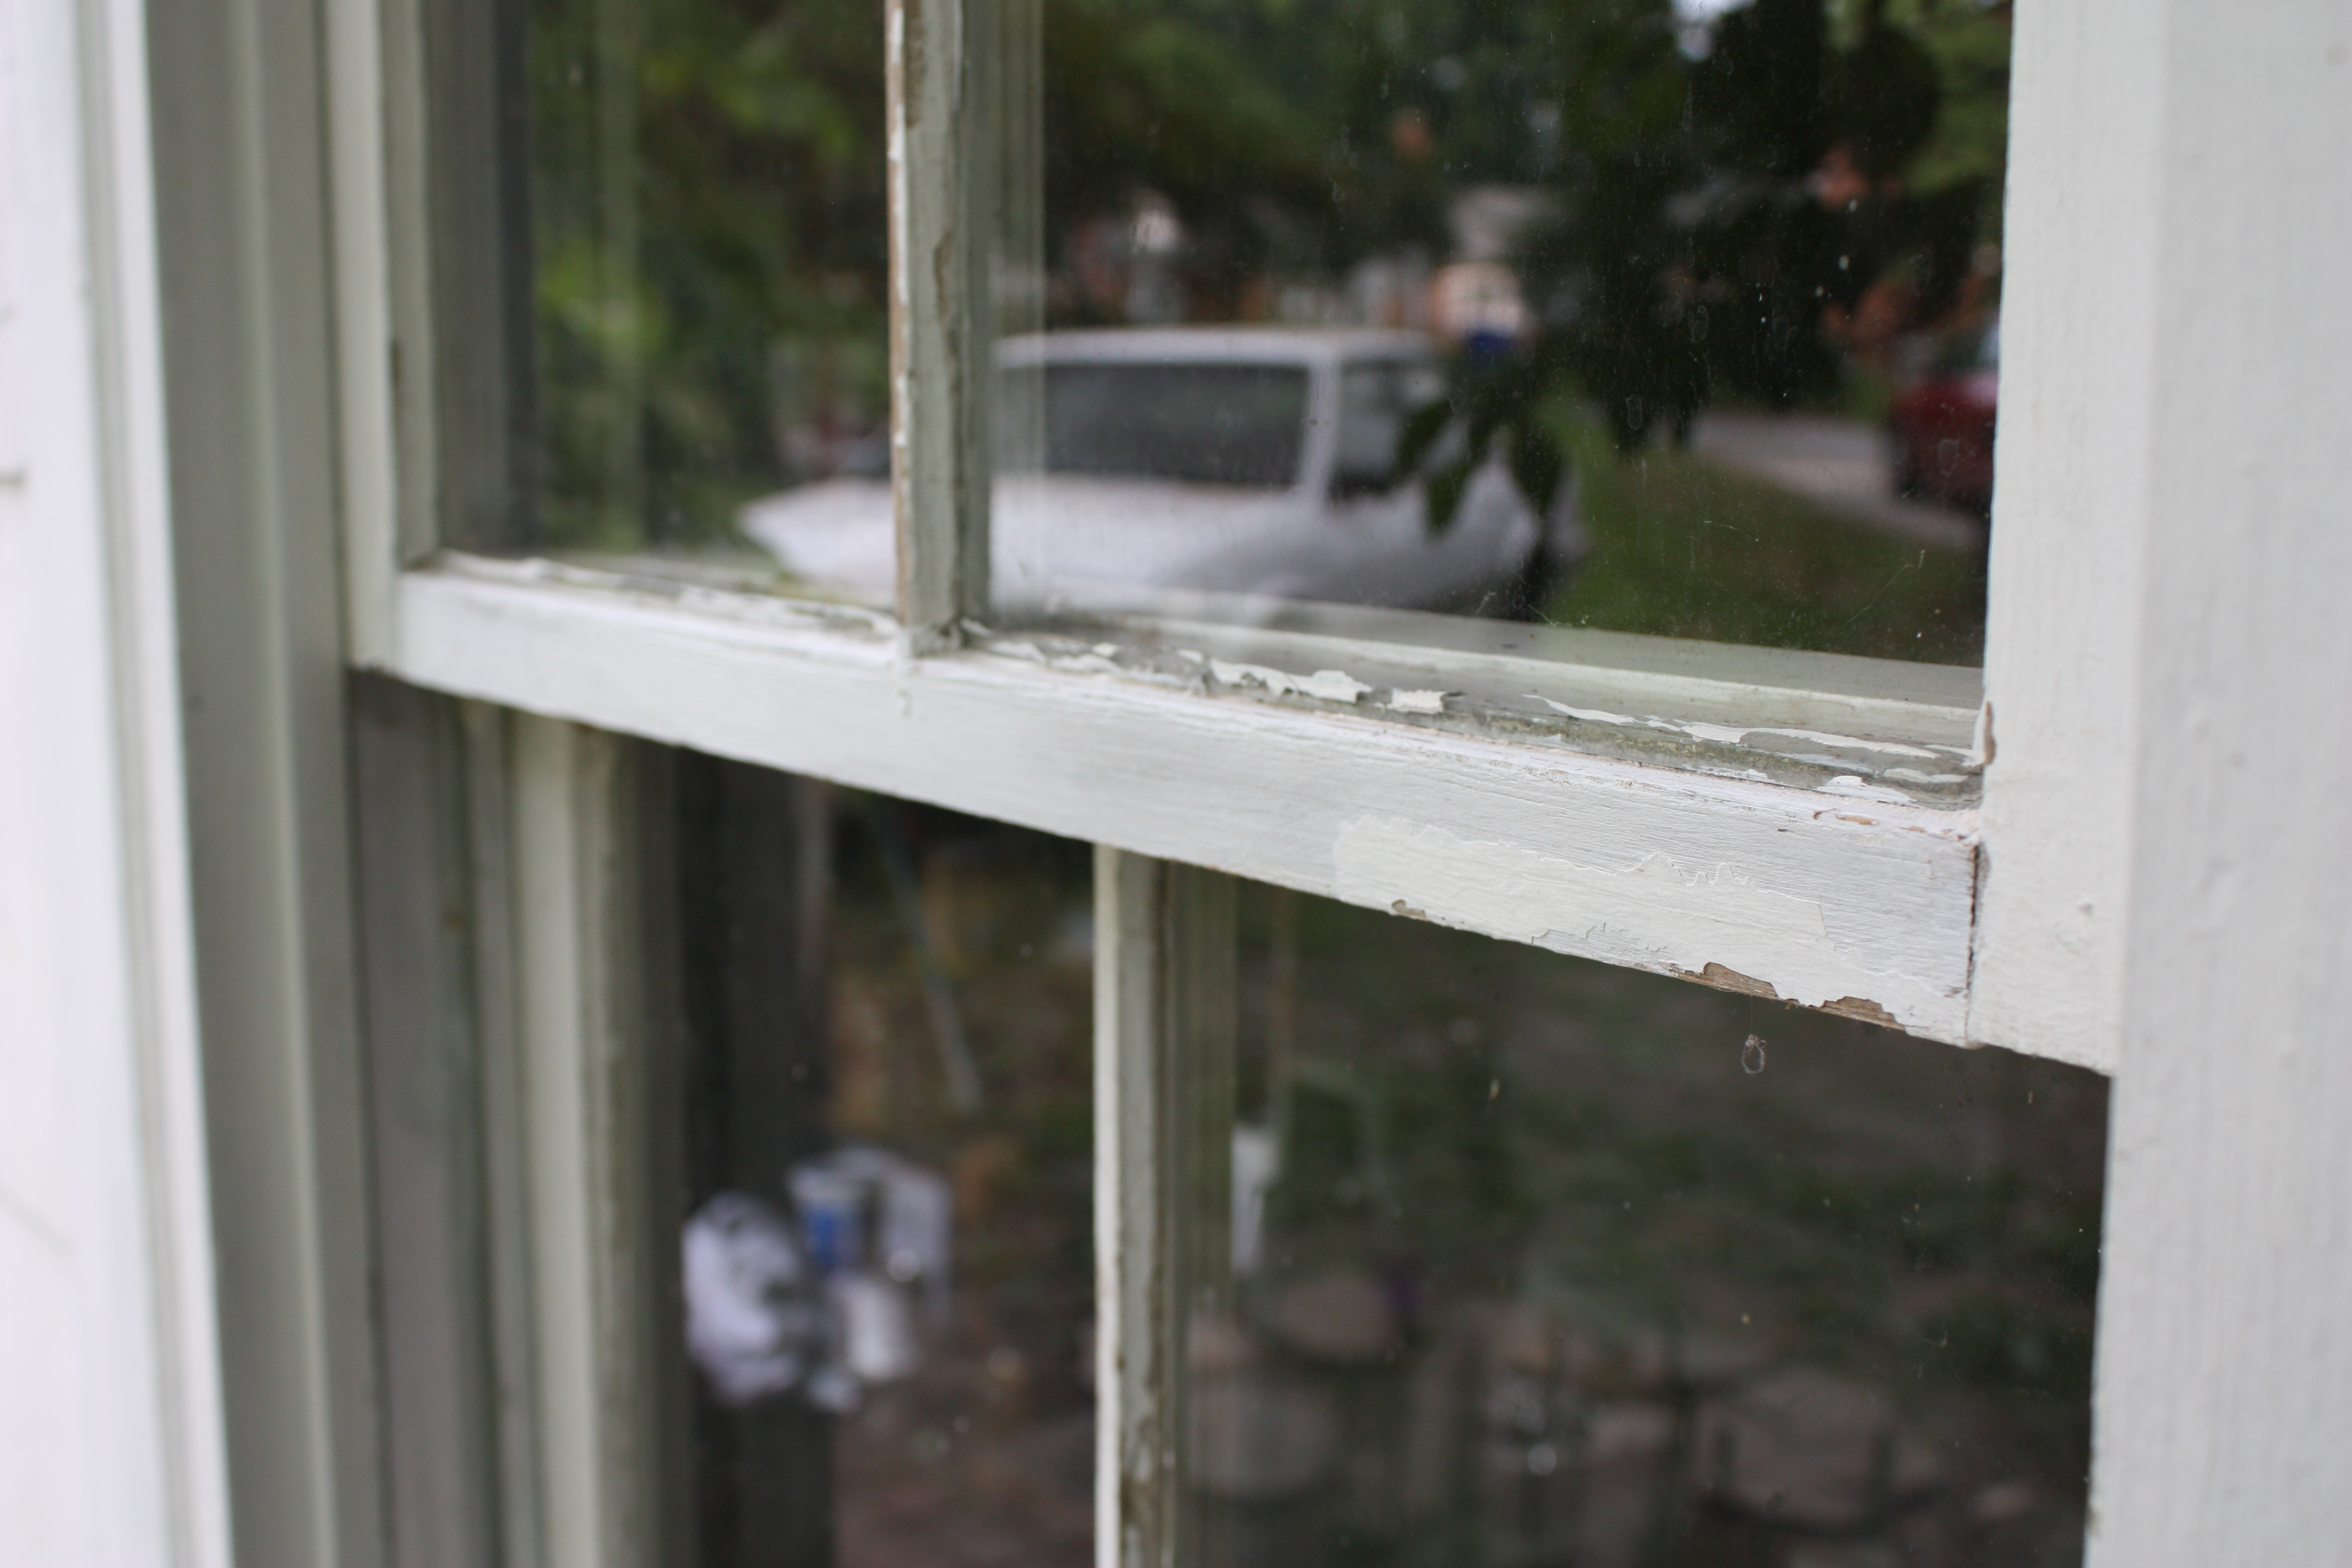 Window Glazing Putty : Window putty i mean glazing compound let s face the music